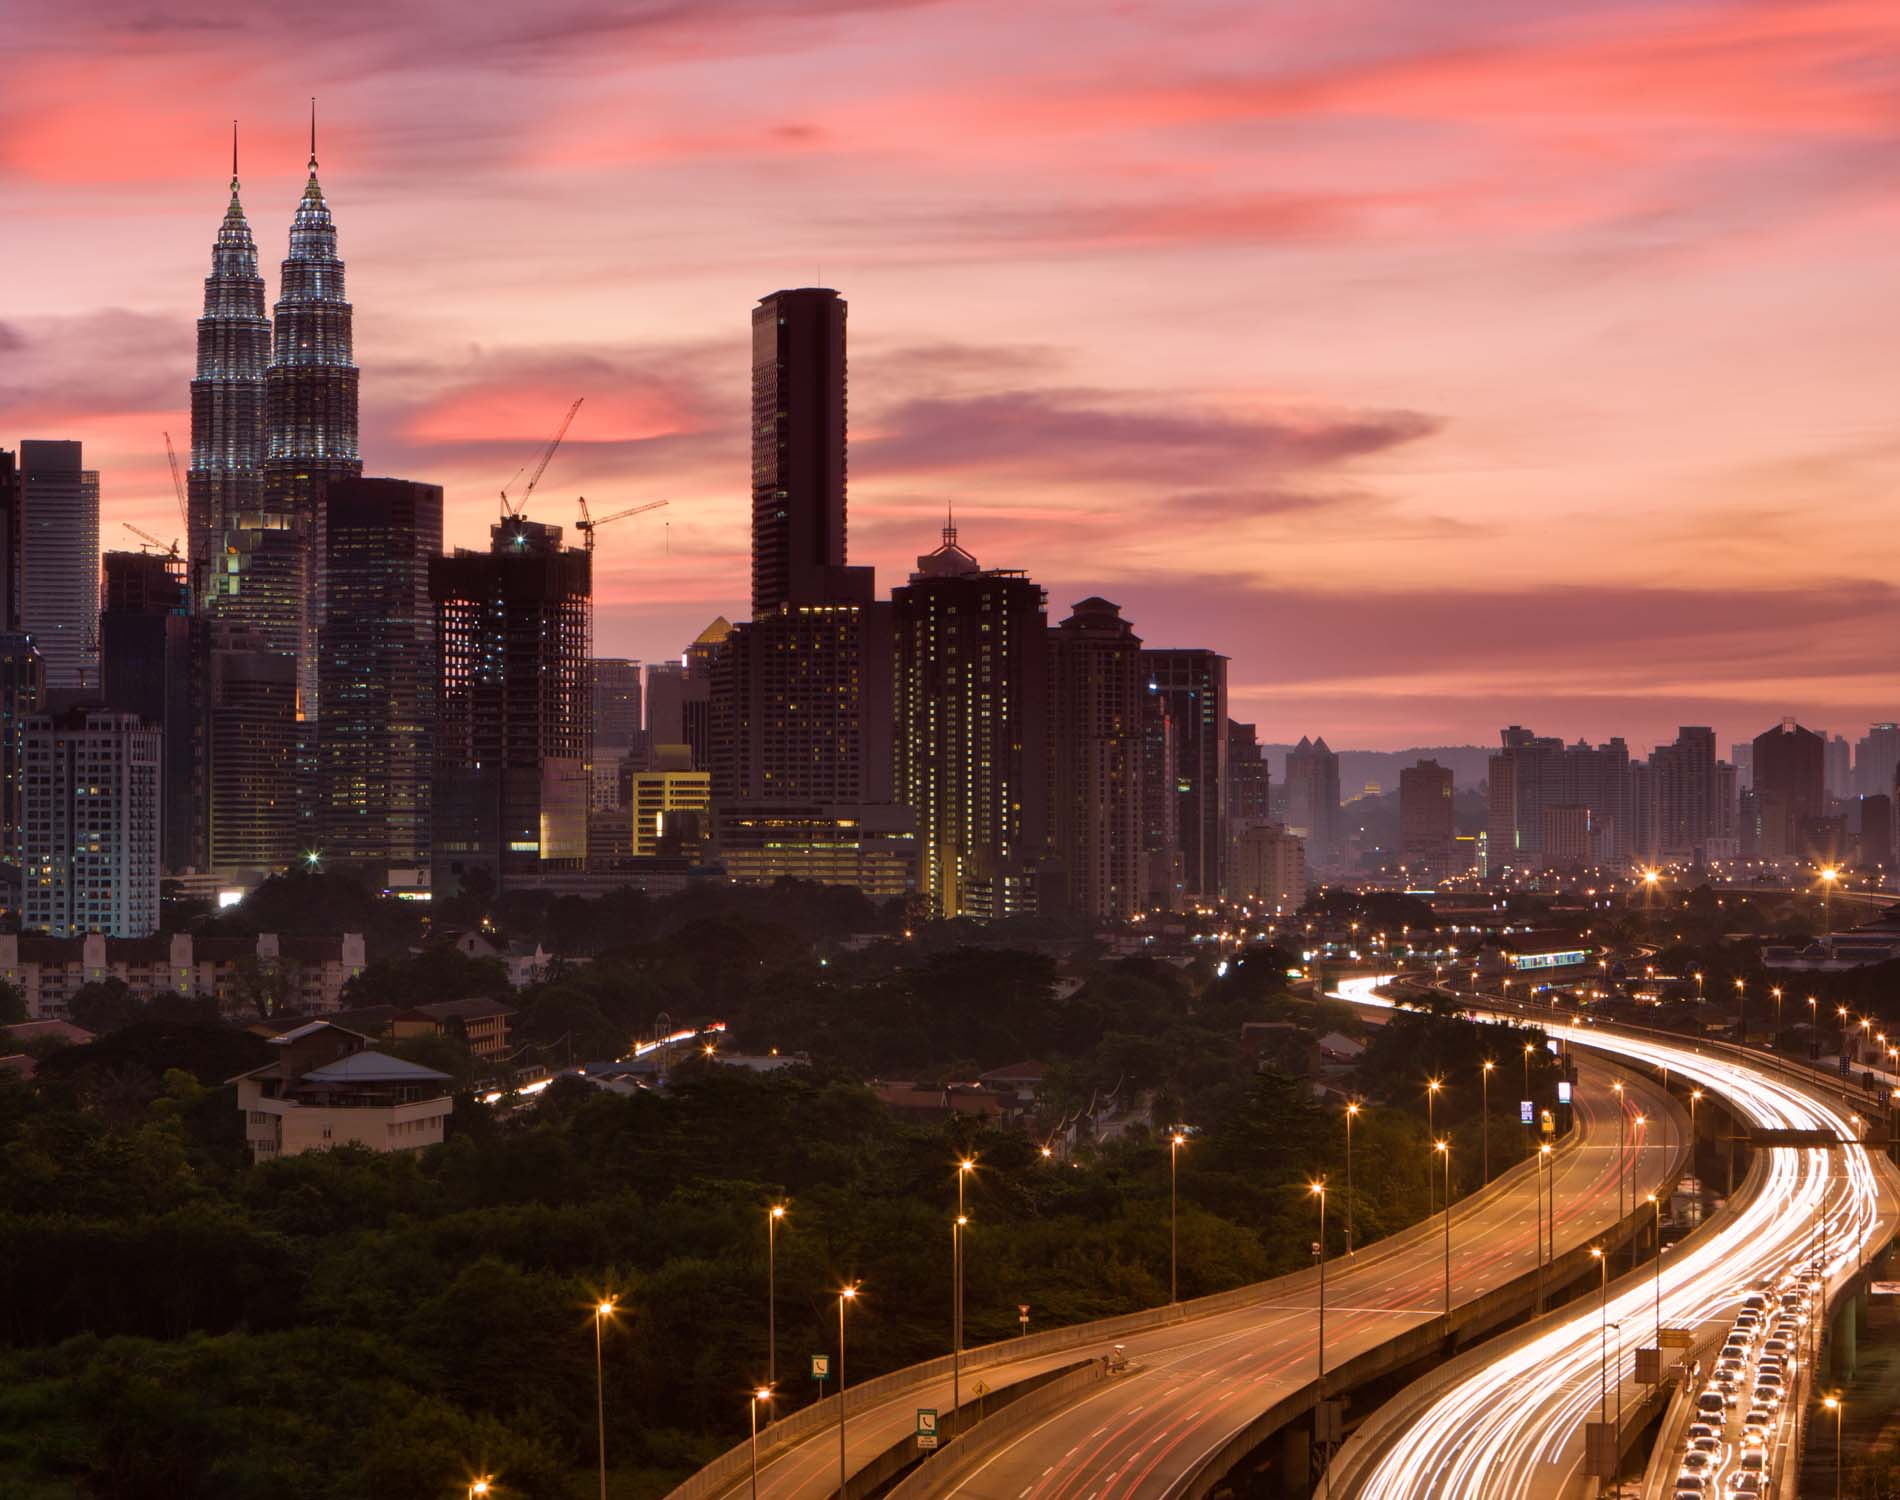 /-/media/images/website/background-images/offices/kuala-lumpur/kuala_lumpur_02_bg.ashx